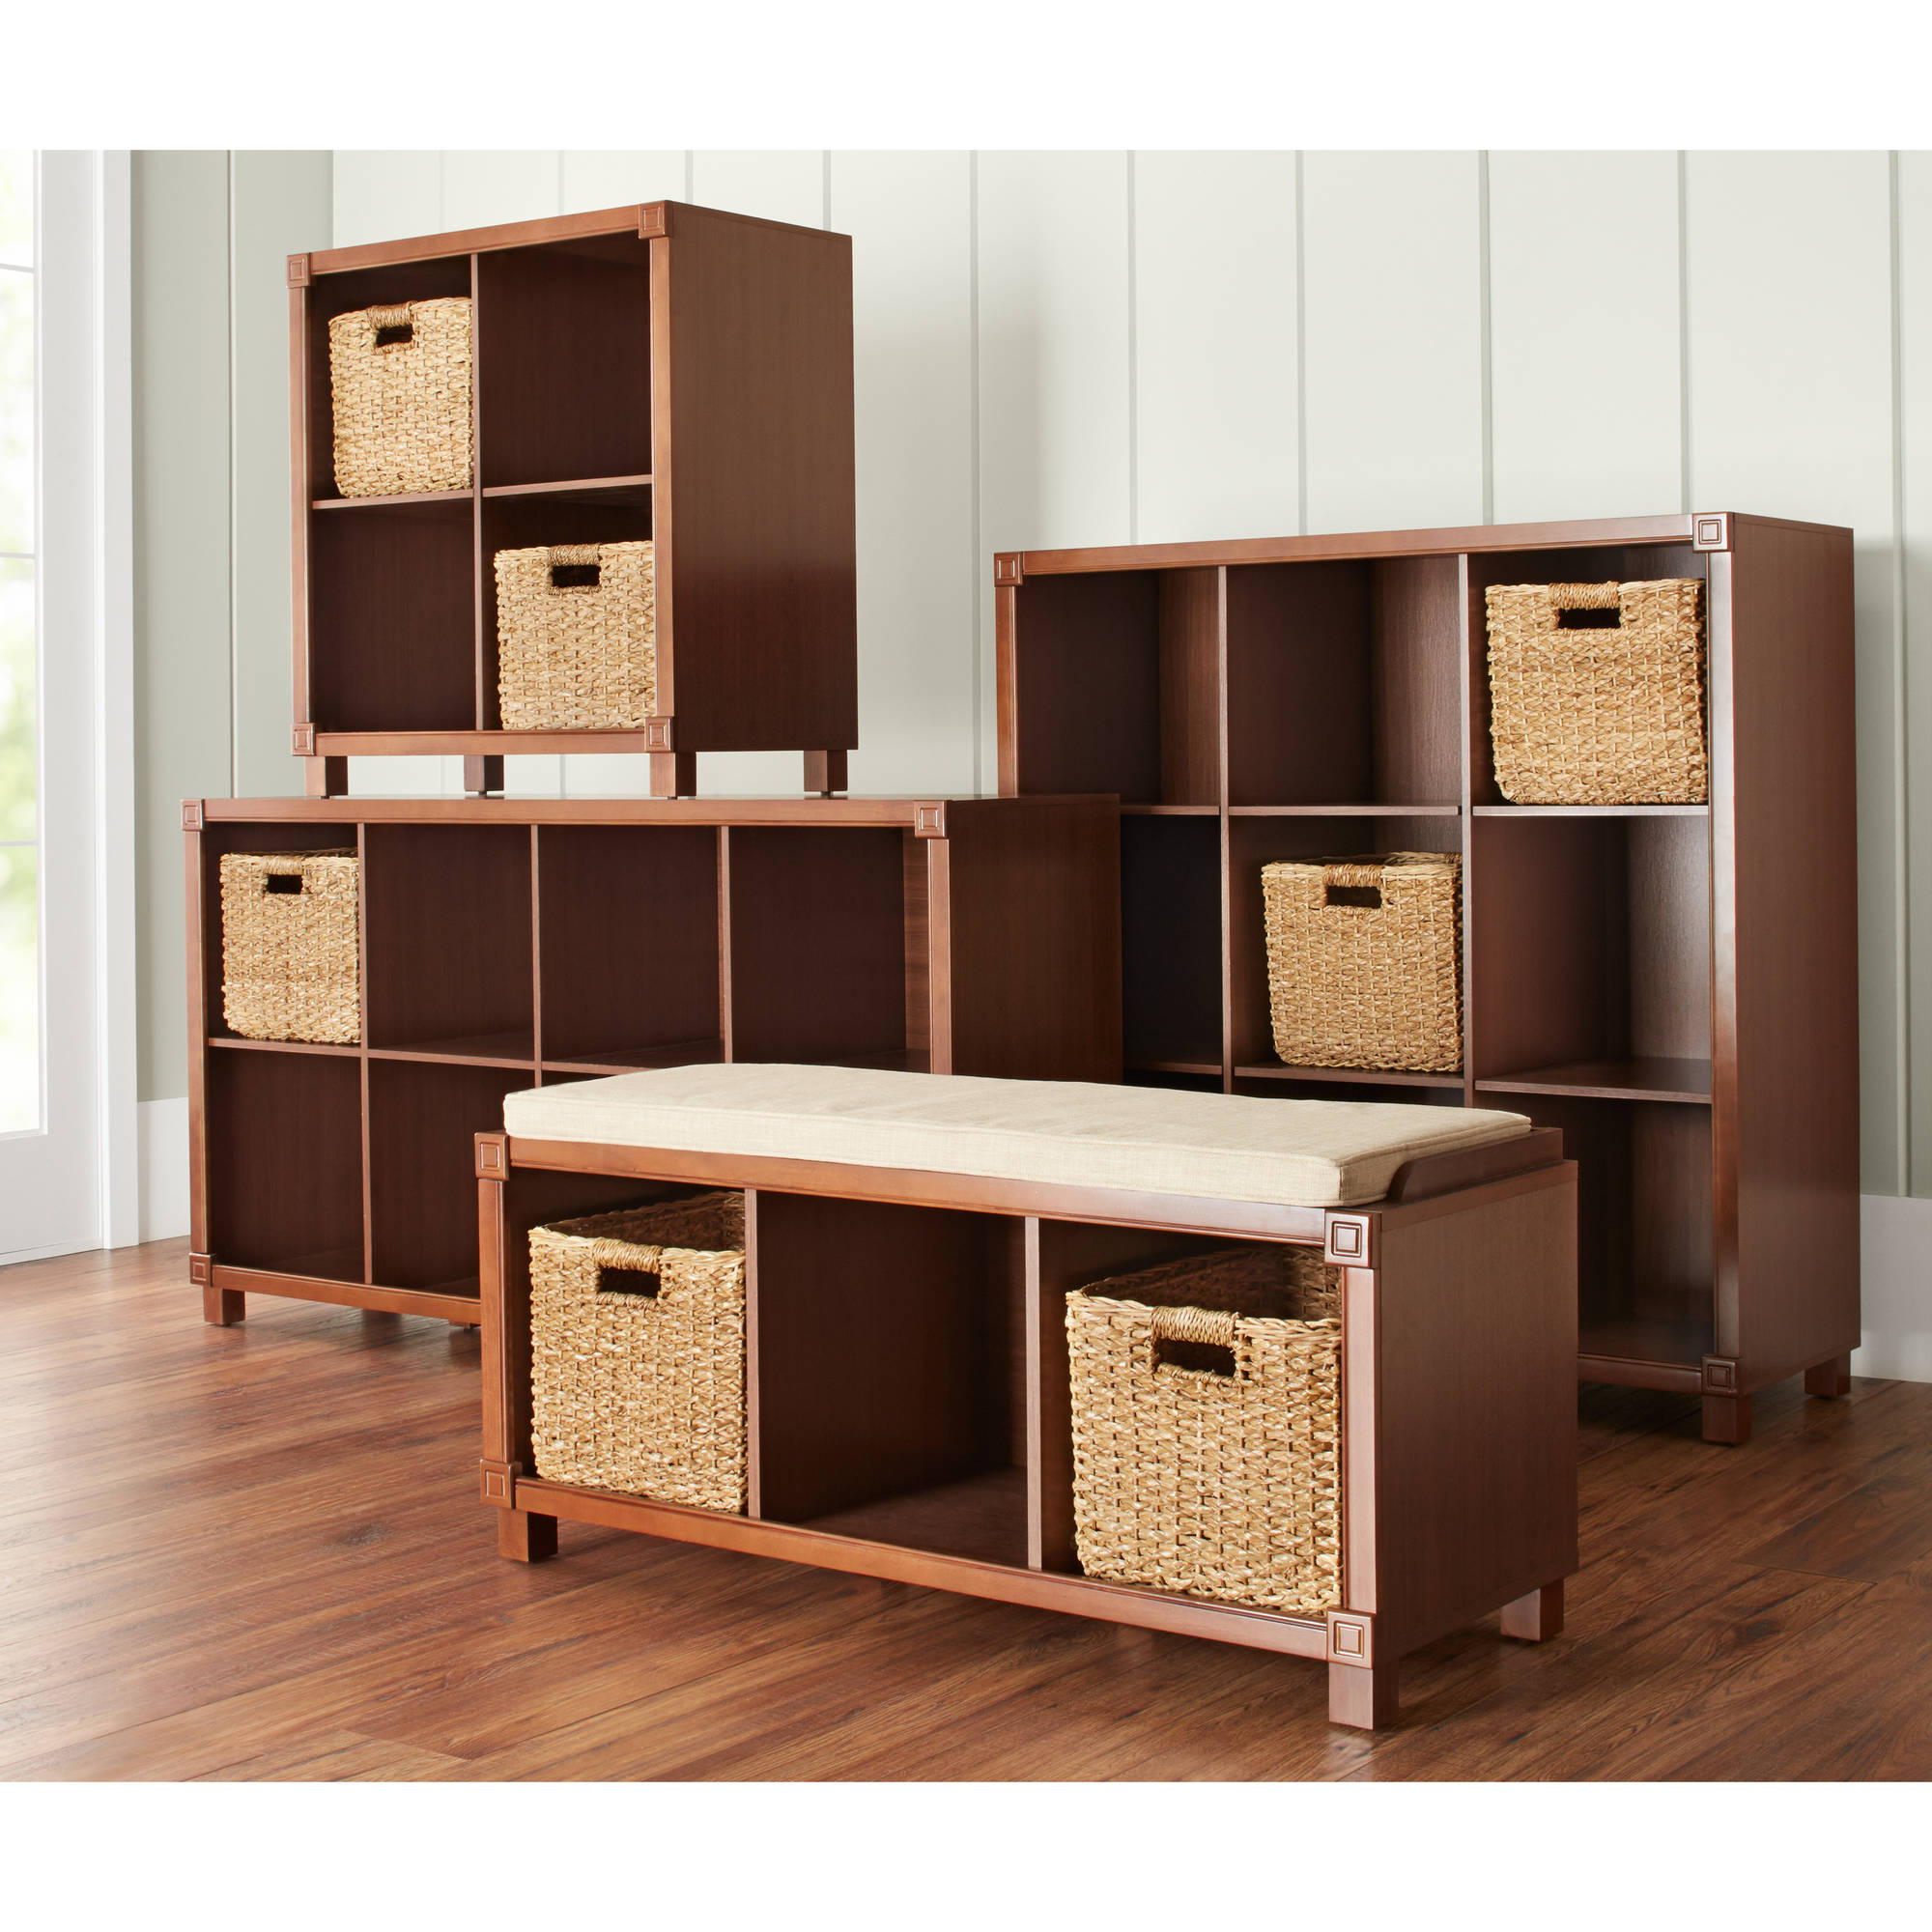 gorgeous for photos ideas mount entryway shoe astounding size wall plans hutch bench of with ikea design and astoundinge full storage home